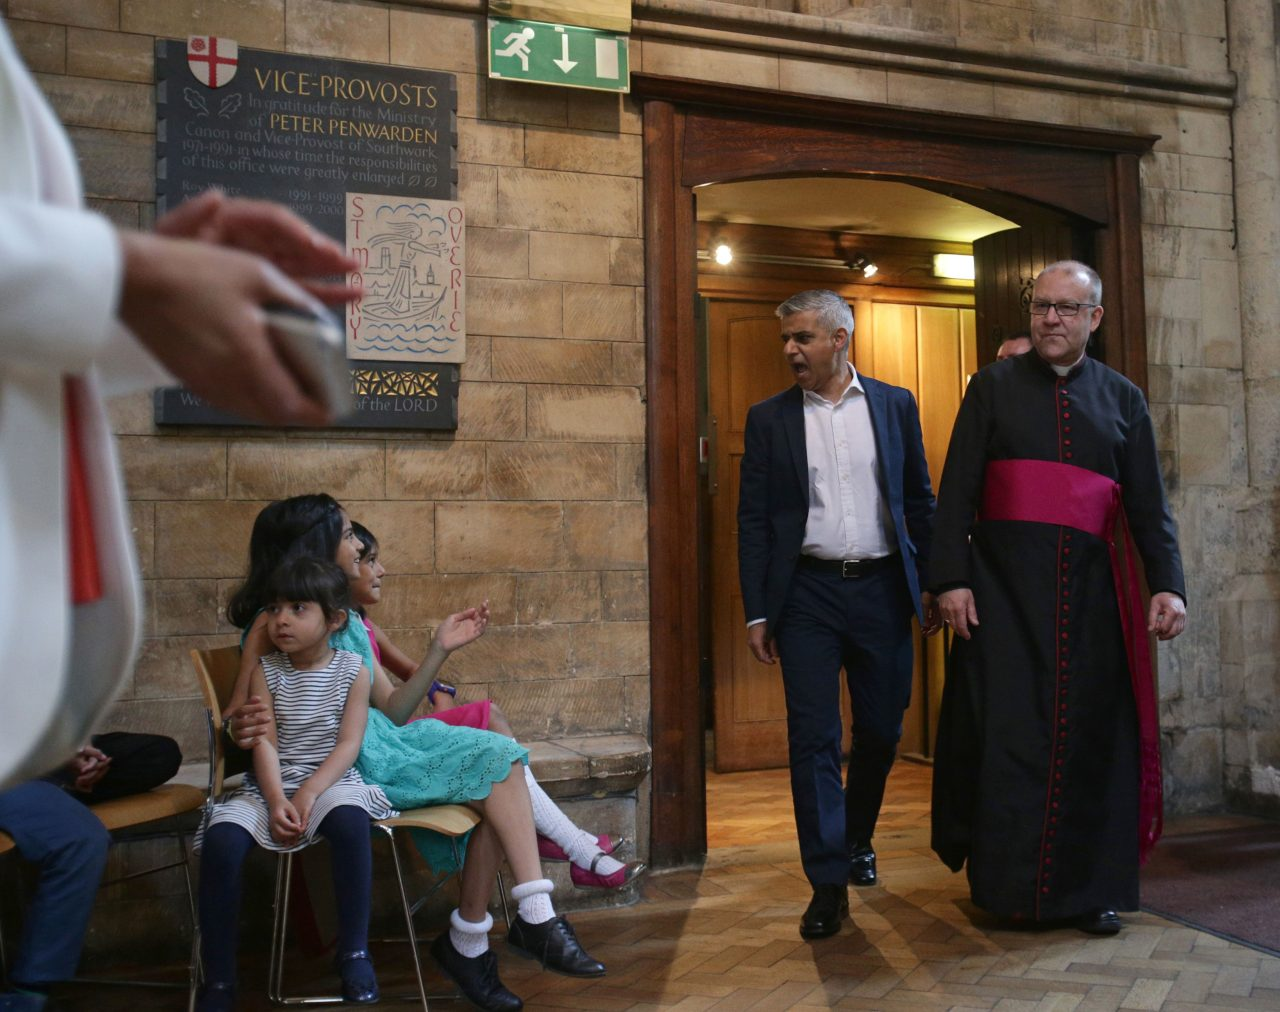 "Britain's incoming London Mayor Sadiq Khan (2R), walks along side the Dean of Southwark Cathedral, The Very Reverend Andrew Nunn (R), during his swearing-in ceremony at Southwark Cathedral in cental London on May 7, 2016. London's new mayor Sadiq Khan thanked voters for choosing ""unity over division"" as he was elected Saturday, becoming the first Muslim leader of a major Western capital. / AFP / POOL / Yui Mok        (Photo credit should read YUI MOK/AFP/Getty Images)"